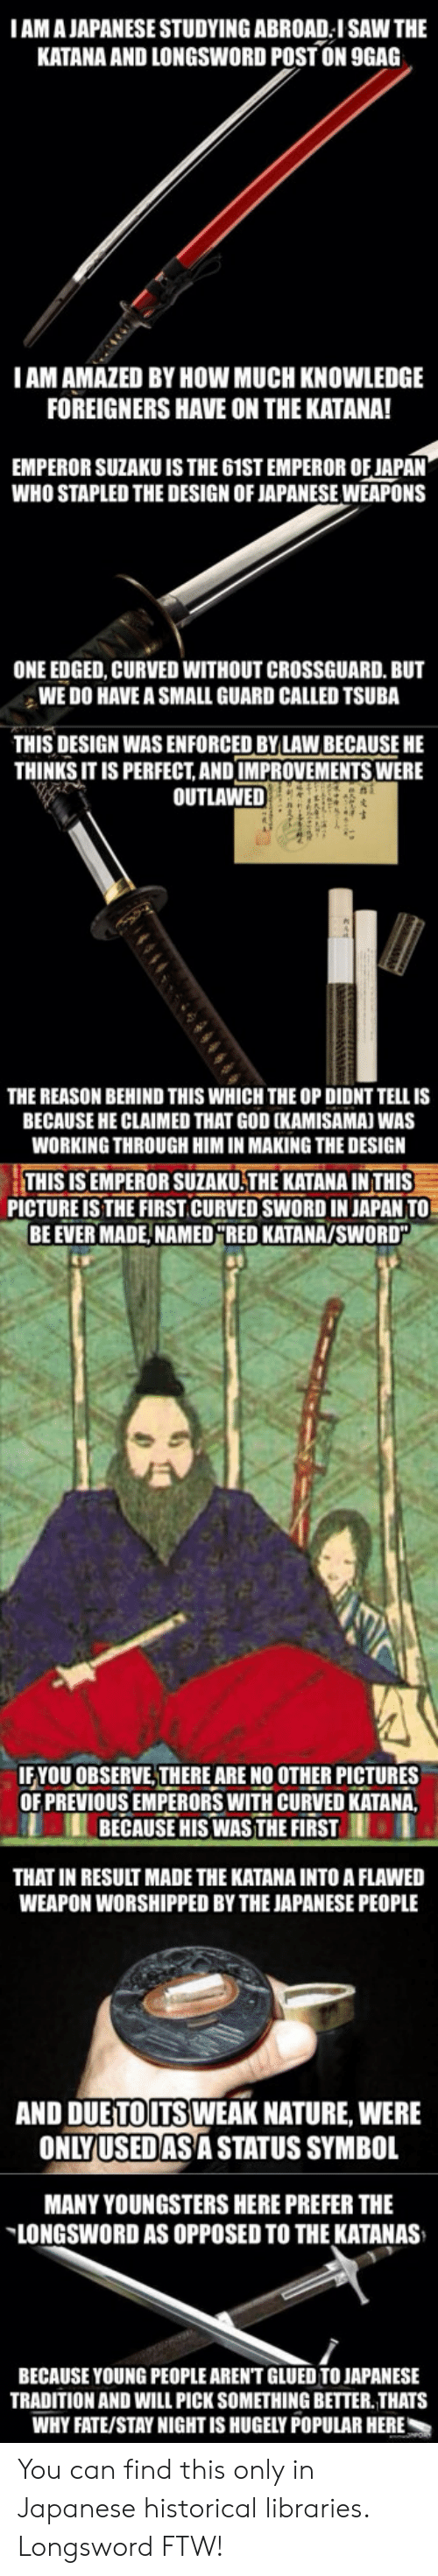 fate stay: IAM A JAPANESE STUDYING ABROAD I SAW THE  KATANA AND LONGSWORD POSTON  9GAG  IAM AMAZED BY HOW MUCH KNOWLEDGE  FOREIGNERS HAVE ON THE KATANA!  EMPEROR SUZAKU IS THE 61ST EMPEROR OF JAPAN  WHO STAPLED THE DESIGN OF JAPANESE WEAPONS  ONE EDGED, CURVED WITHOUT CROSSGUARD. BUT  WE DO HAVE A SMALL GUARD CALLED TSUBA  THIS DESIGN WAS ENFORCED BYLAW BECAUSE HE  THINKS IT IS PERFECT,AND IMPROVEMENTS WERE  OUTLAWED  THE REASON BEHIND THIS WHICH THE OP DIDNT TELL IS  BECAUSE HE CLAIMED THAT GOD (KAMISAMAJ WAS  WORKING THROUGH HIM IN MAKING THE DESIGN  THIS IS EMPEROR SUZAKU THE KATANA IN THIS-  BE EVER MADE,NAMEDRED KATANAYSWORD  PICTURE IS THE FIRST CURVED SWORD IN JAPAN TO  YOU OBSERVE,THERE ARE NO OTHER PICTURES  OF PREVIOUS EMPERORS WITH CURVED KATA  BECAUSE HIS WASTHE FIRST  THAT IN RESULT MADE THE KATANA INTO A FLAWED  WEAPON WORSHIPPED BY THE JAPANESE PEOPLE  AND DUETOUTS WEAK NATURE, WERE  ONLYUSEDAS A STATUS SYMBOL  MANY YOUNGSTERS HERE PREFER THE  LONGSWORD AS OPPOSED TO THE KATANAS  BECAUSE YOUNG PEOPLE AREN'T GLUED TO JAPANESE  TRADITION AND WILL PICK SOMETHING BETTER. THATS  WHY FATE/STAY NIGHT IS HUGELY POPULAR HERE You can find this only in Japanese historical libraries. Longsword FTW!